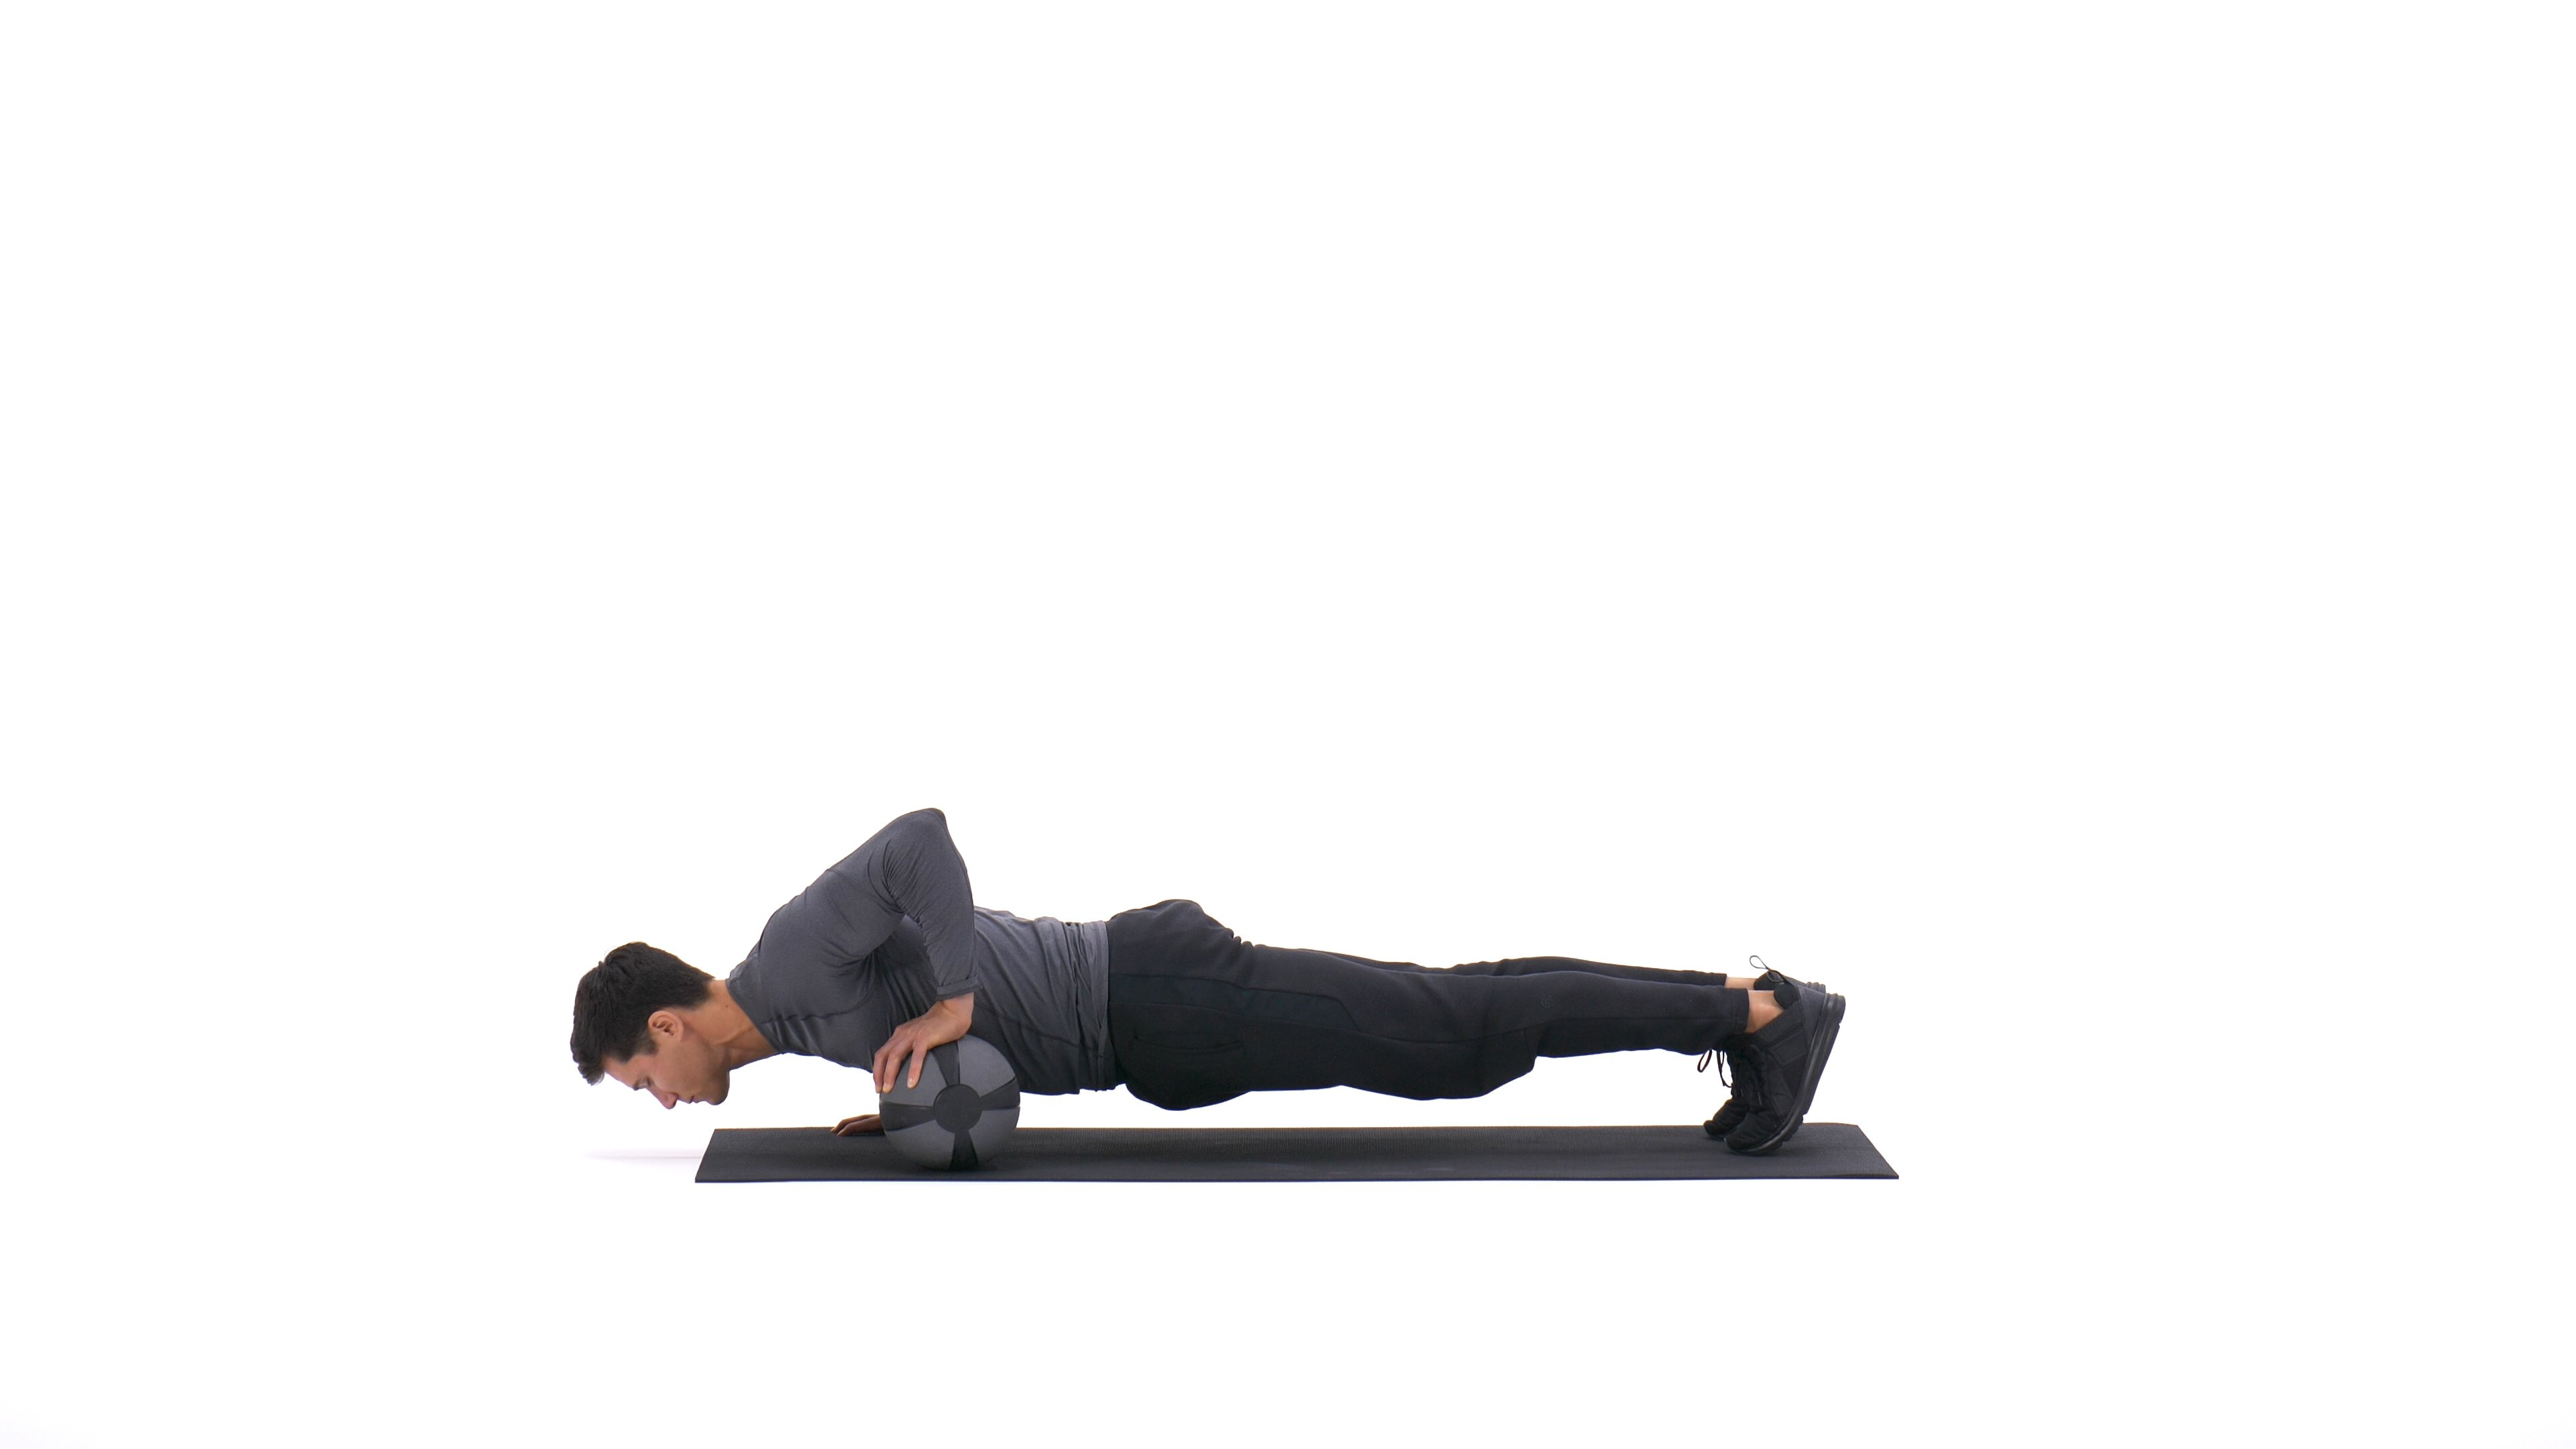 Medicine ball push-up image